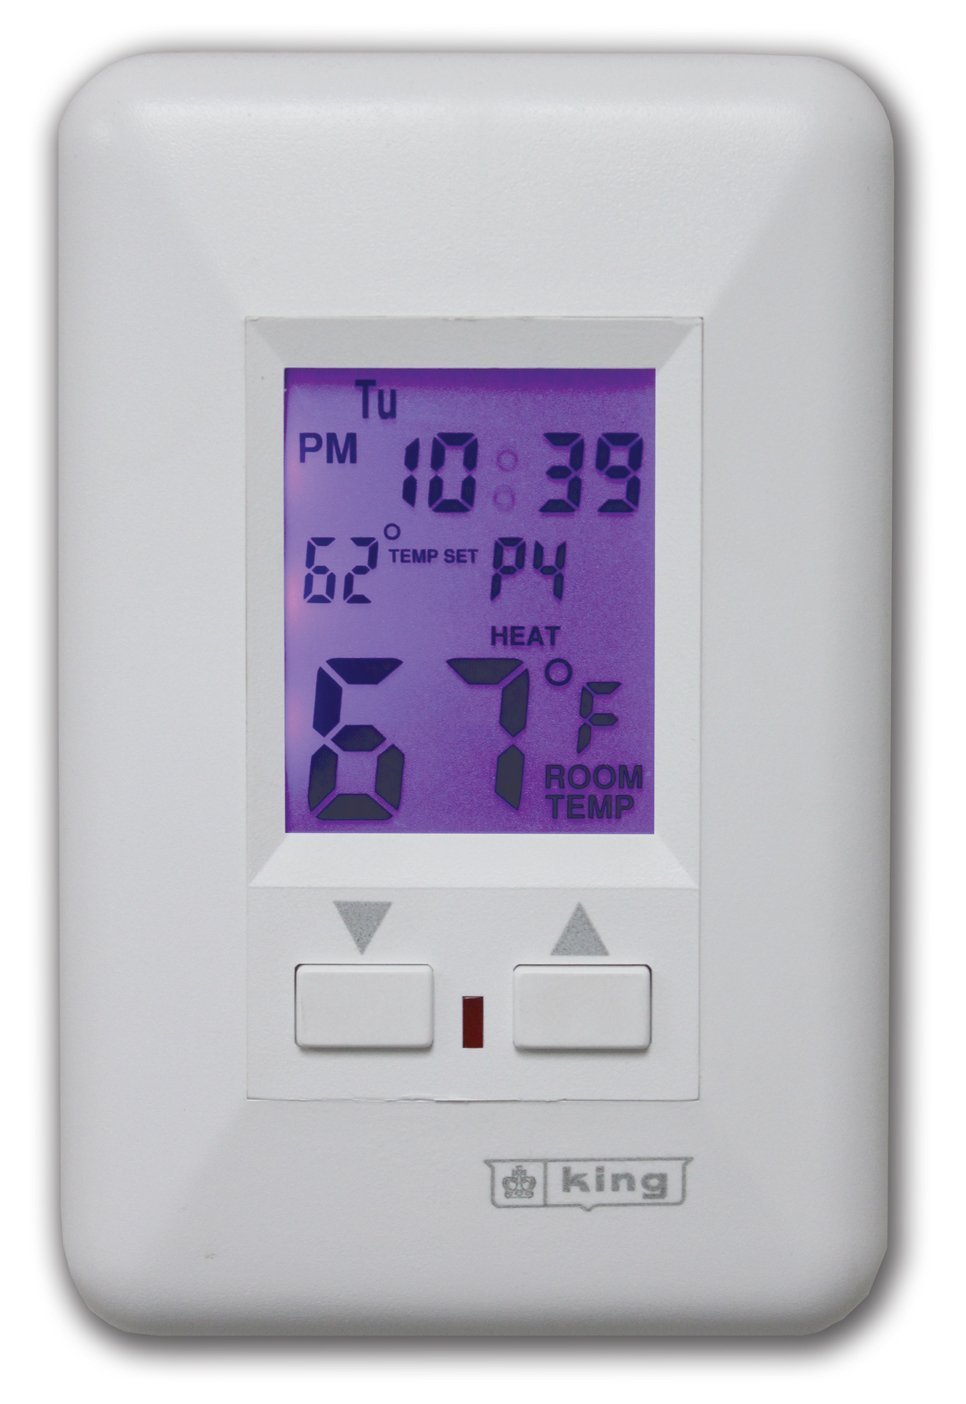 King Electric ESP120-R ESP Programmable Electronic Thermostat, 120V